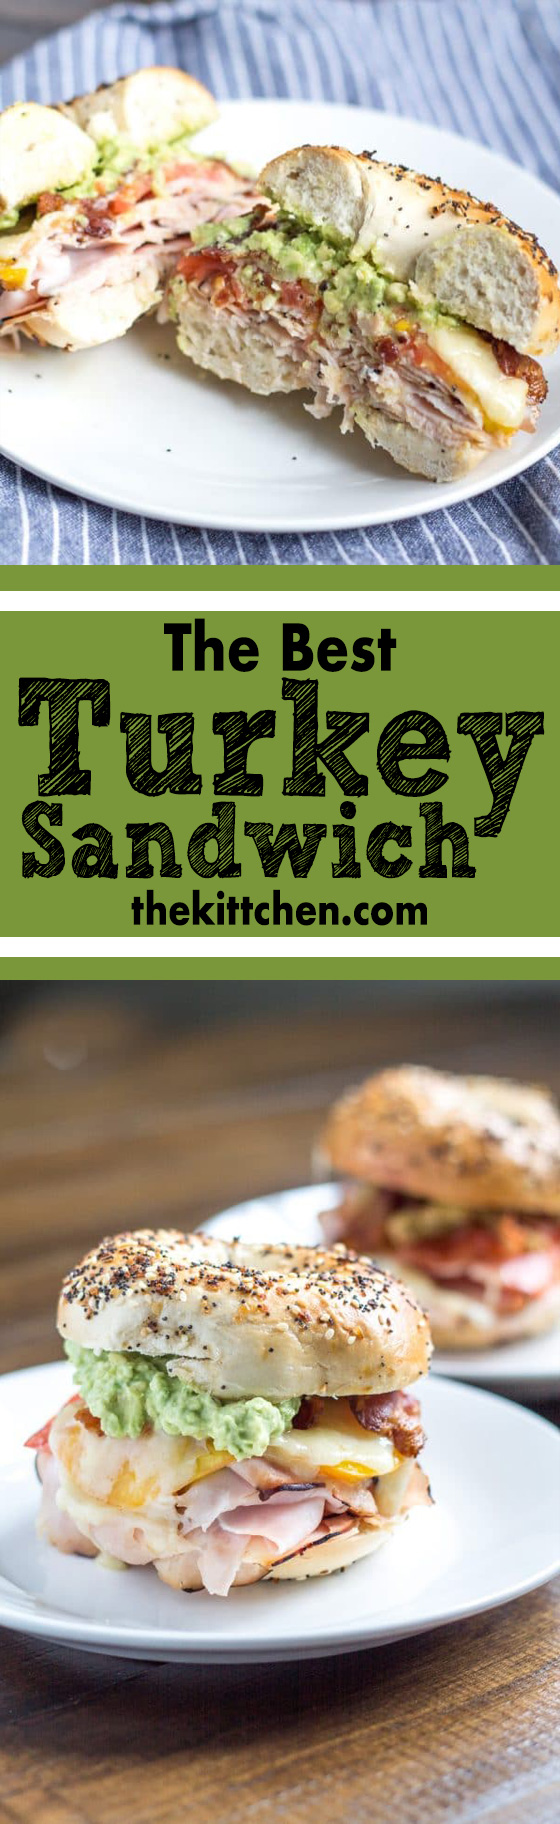 I am sharing my secrets to making the very best turkey sandwich. This is a lunch that I have been eating for years, and I am sure you will love it too.